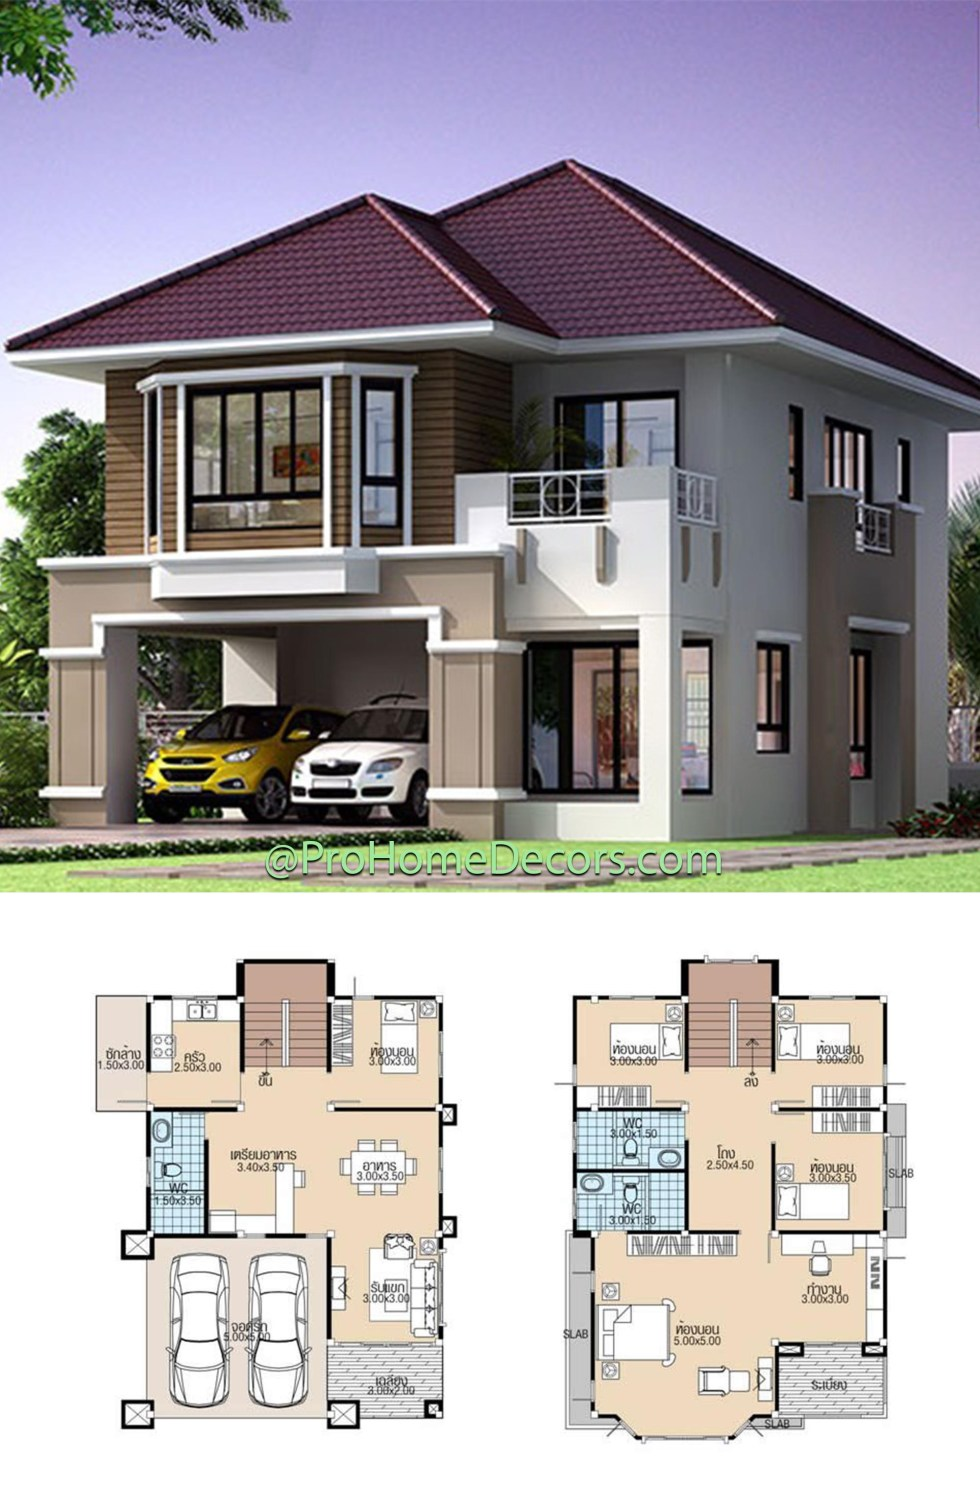 House plans 8x11.5 with 5 Beds